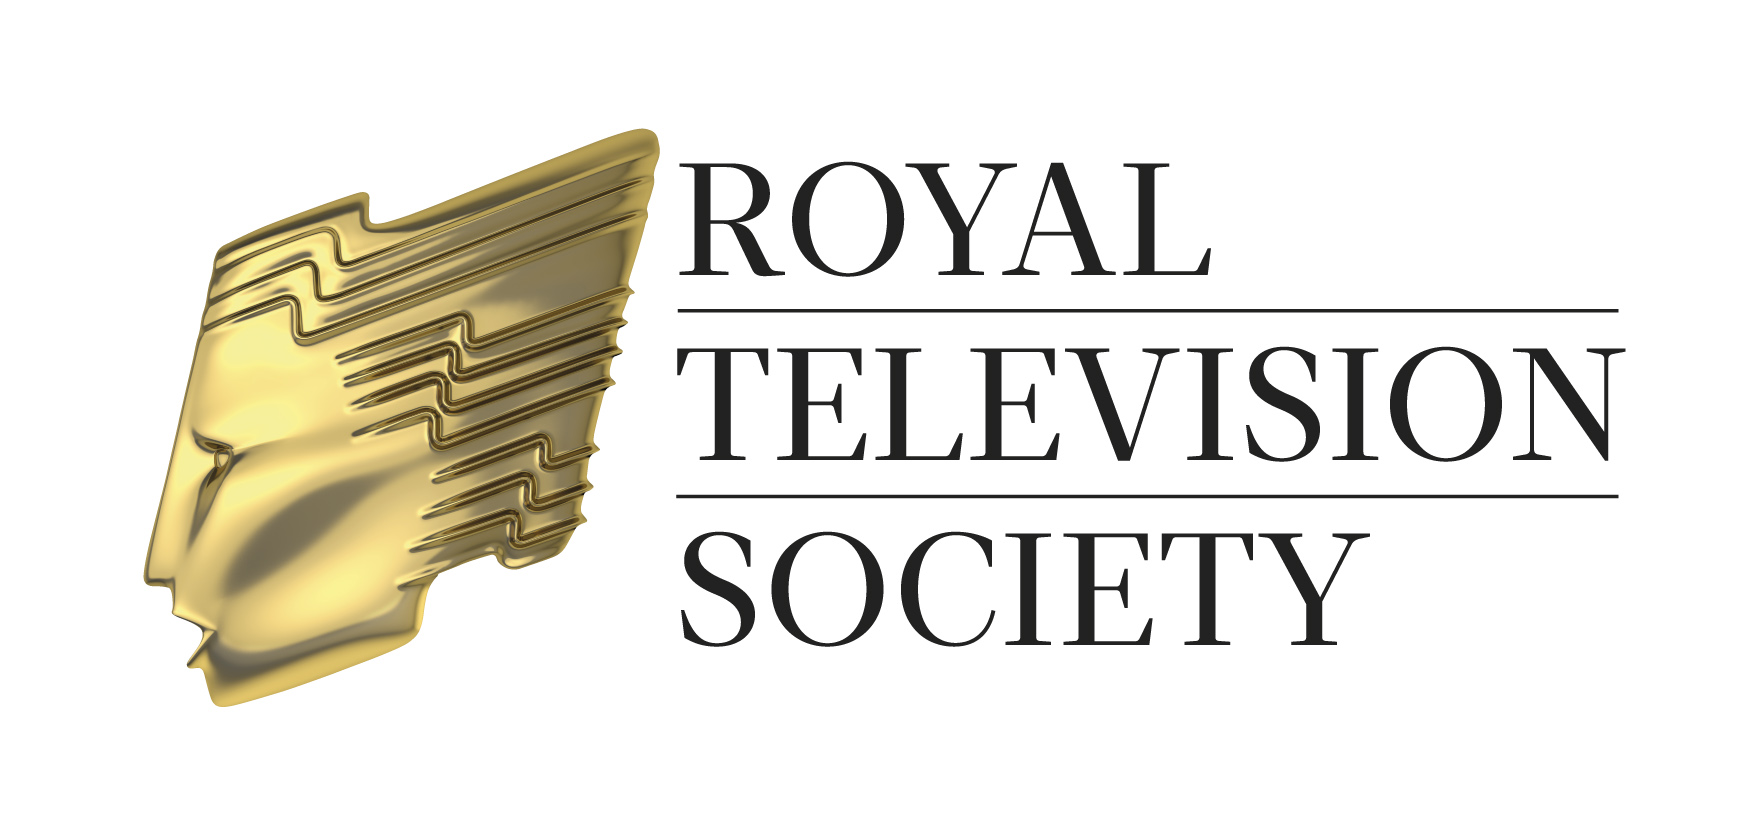 Media Release: Royal Television Society announces nominees for Student Television Awards 2016